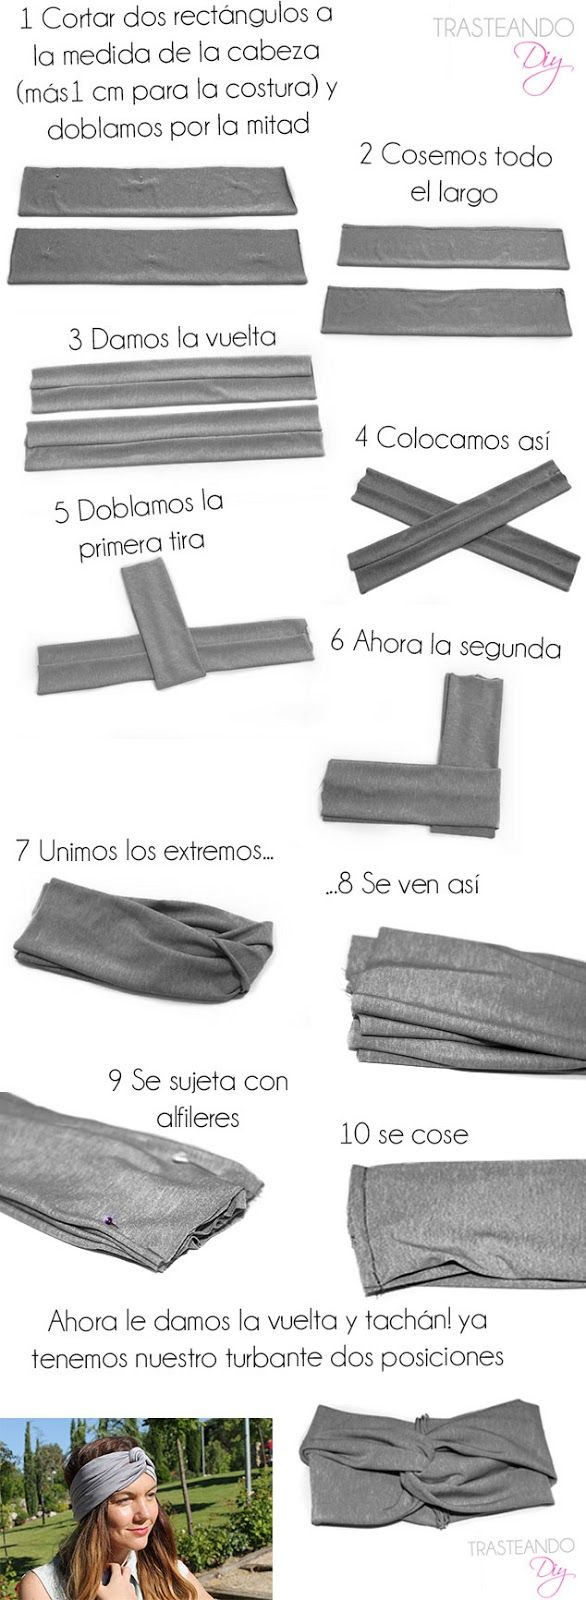 DIY...TURBANTE 2 EN 1 - Handbox | Craft Lovers